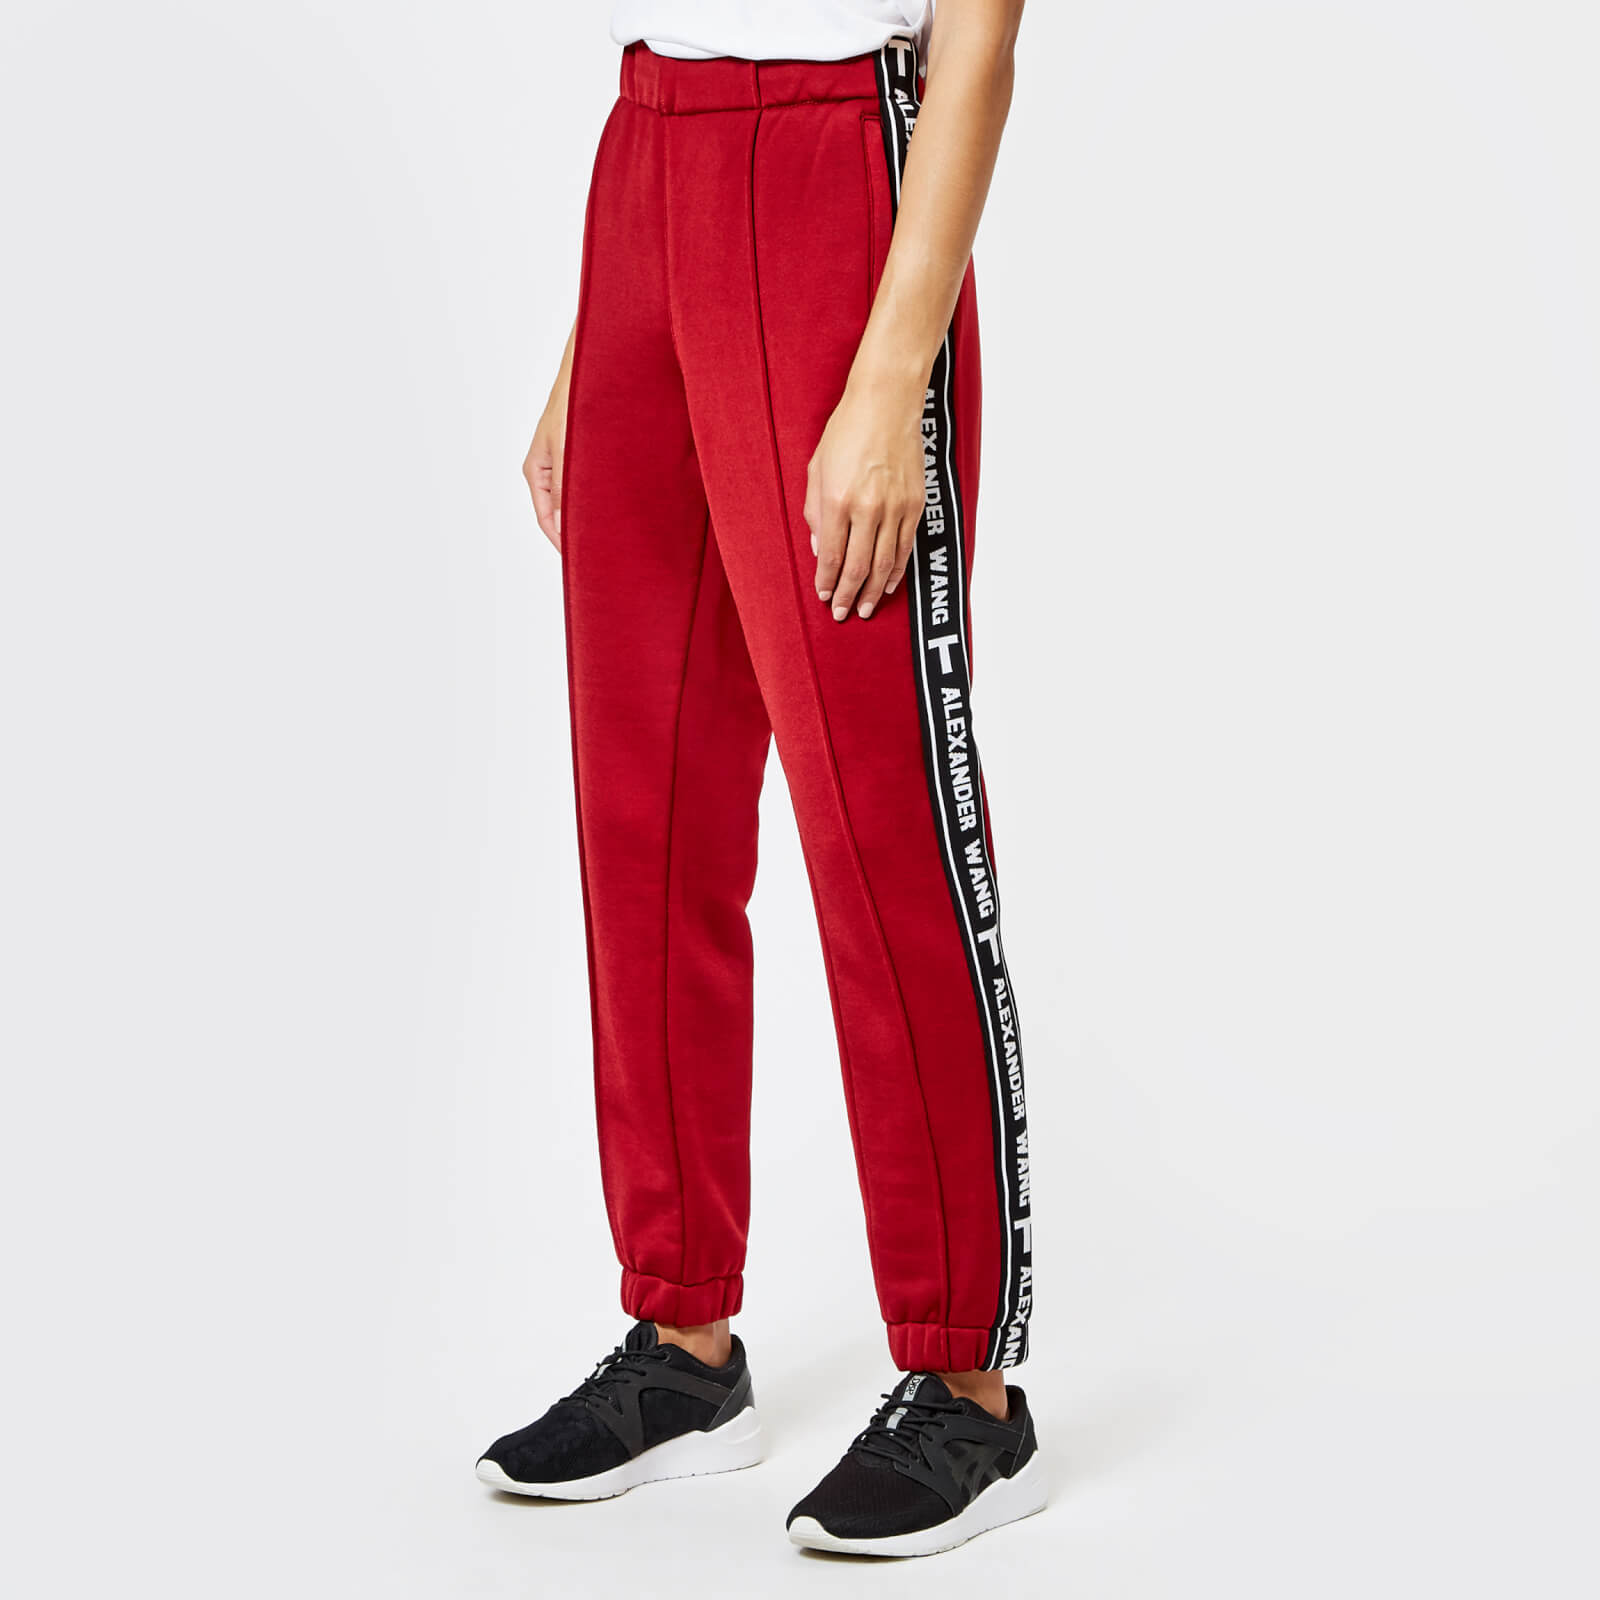 T by Alexander Wang Women's Sleek French Terry Pull-On Track Pants with  Logo Tape - Lipstick